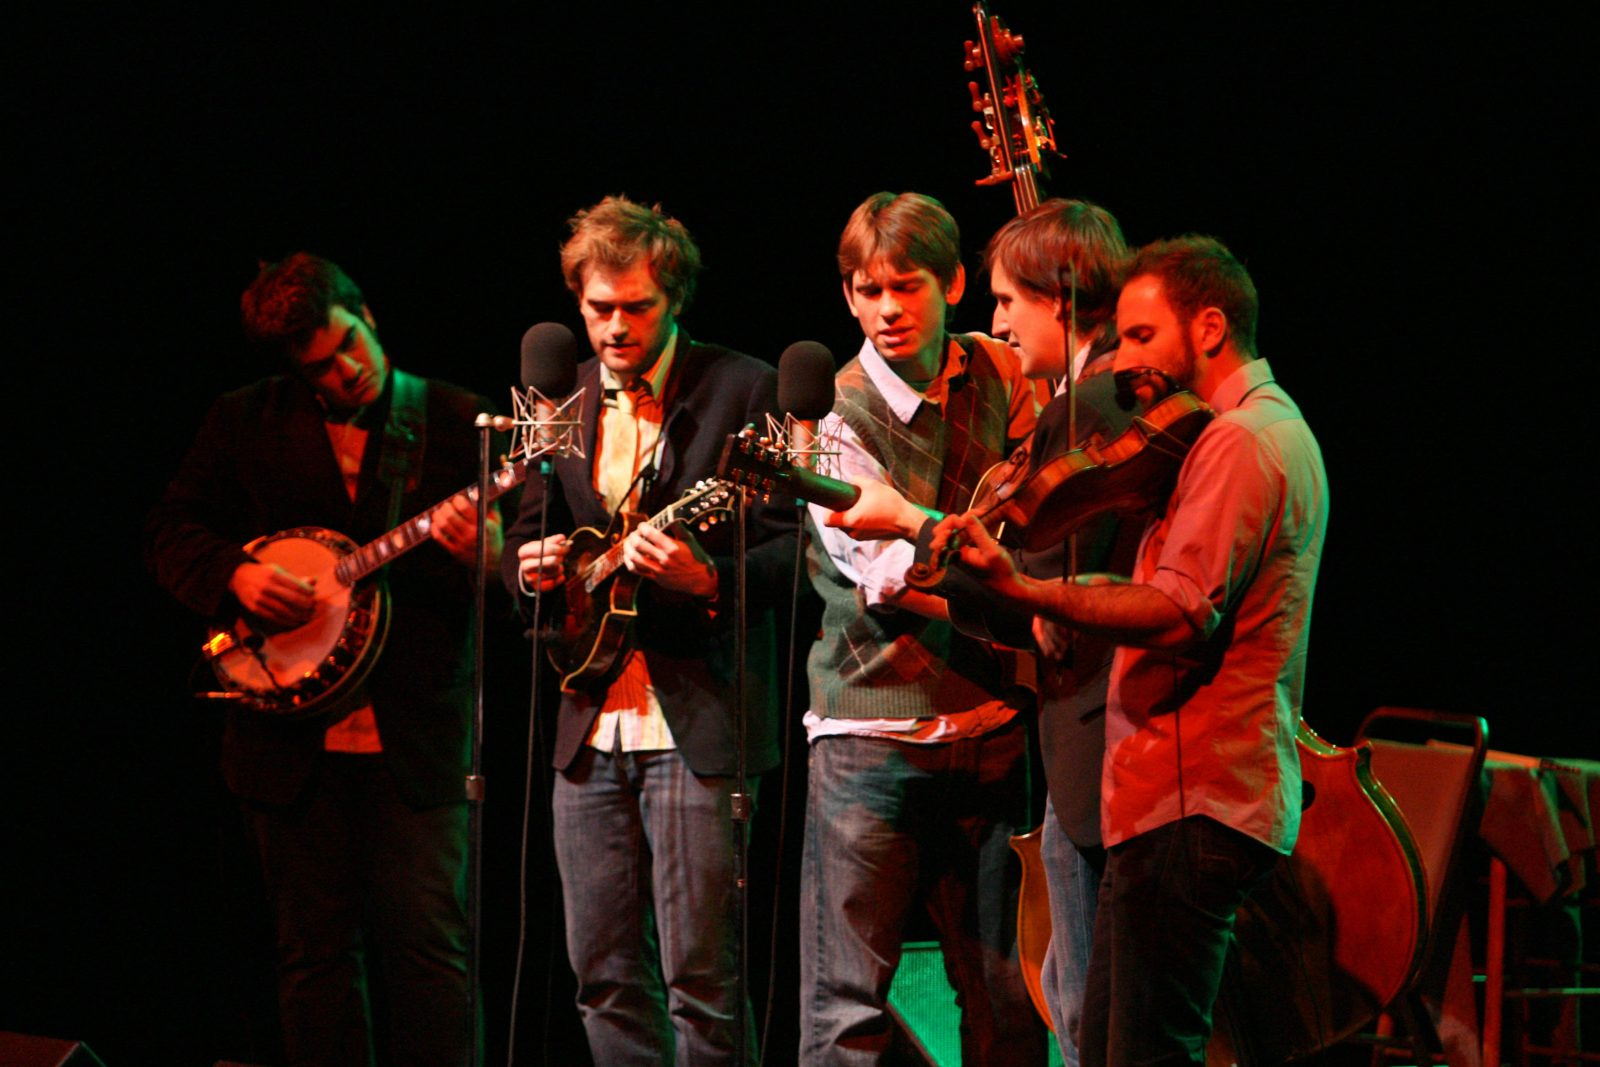 Punch Brothers featuring Chris Thile, performing in the University at Buffalo Center for the Arts in 2008 (News file photo)